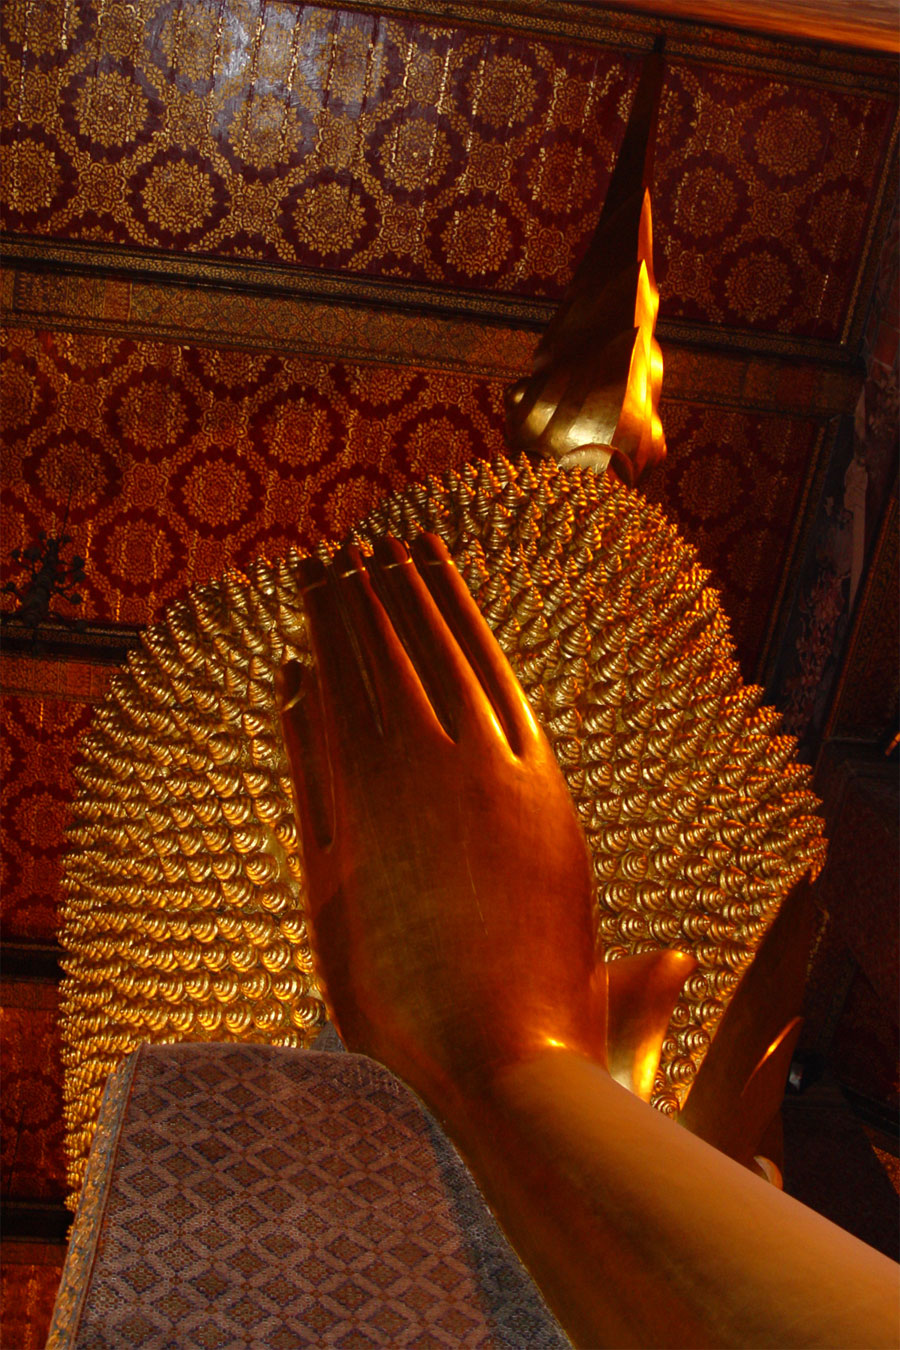 Picture of the back of the Reclining Buddha